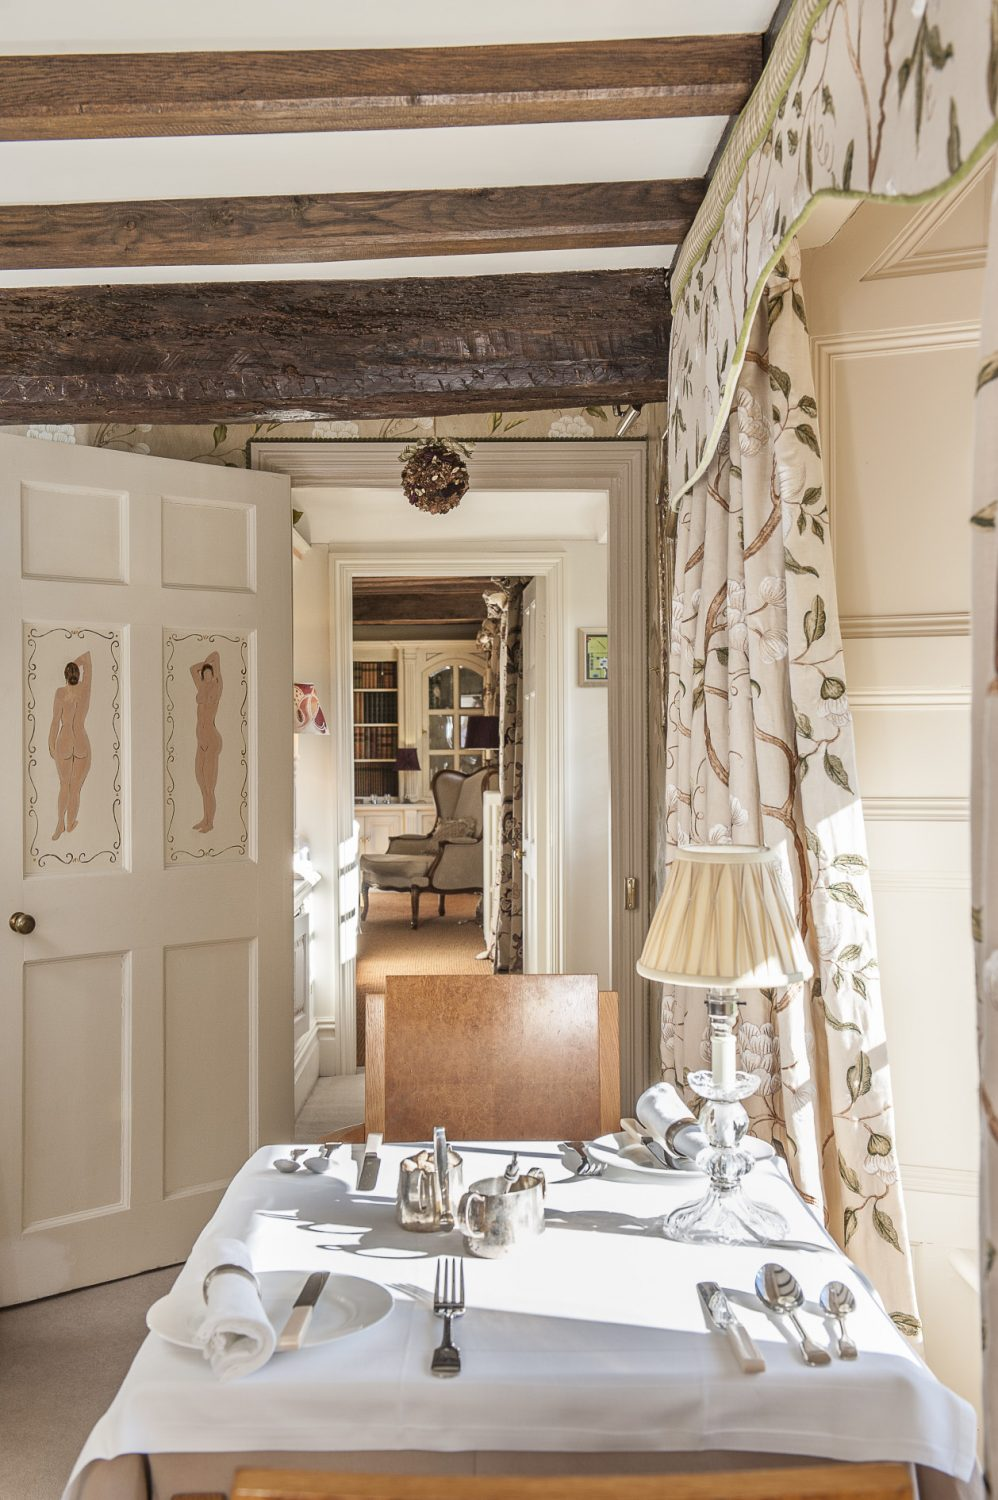 On the doors leading through to the garden and drawing room are two hand-painted nudes, Nina's tribute to Charleston